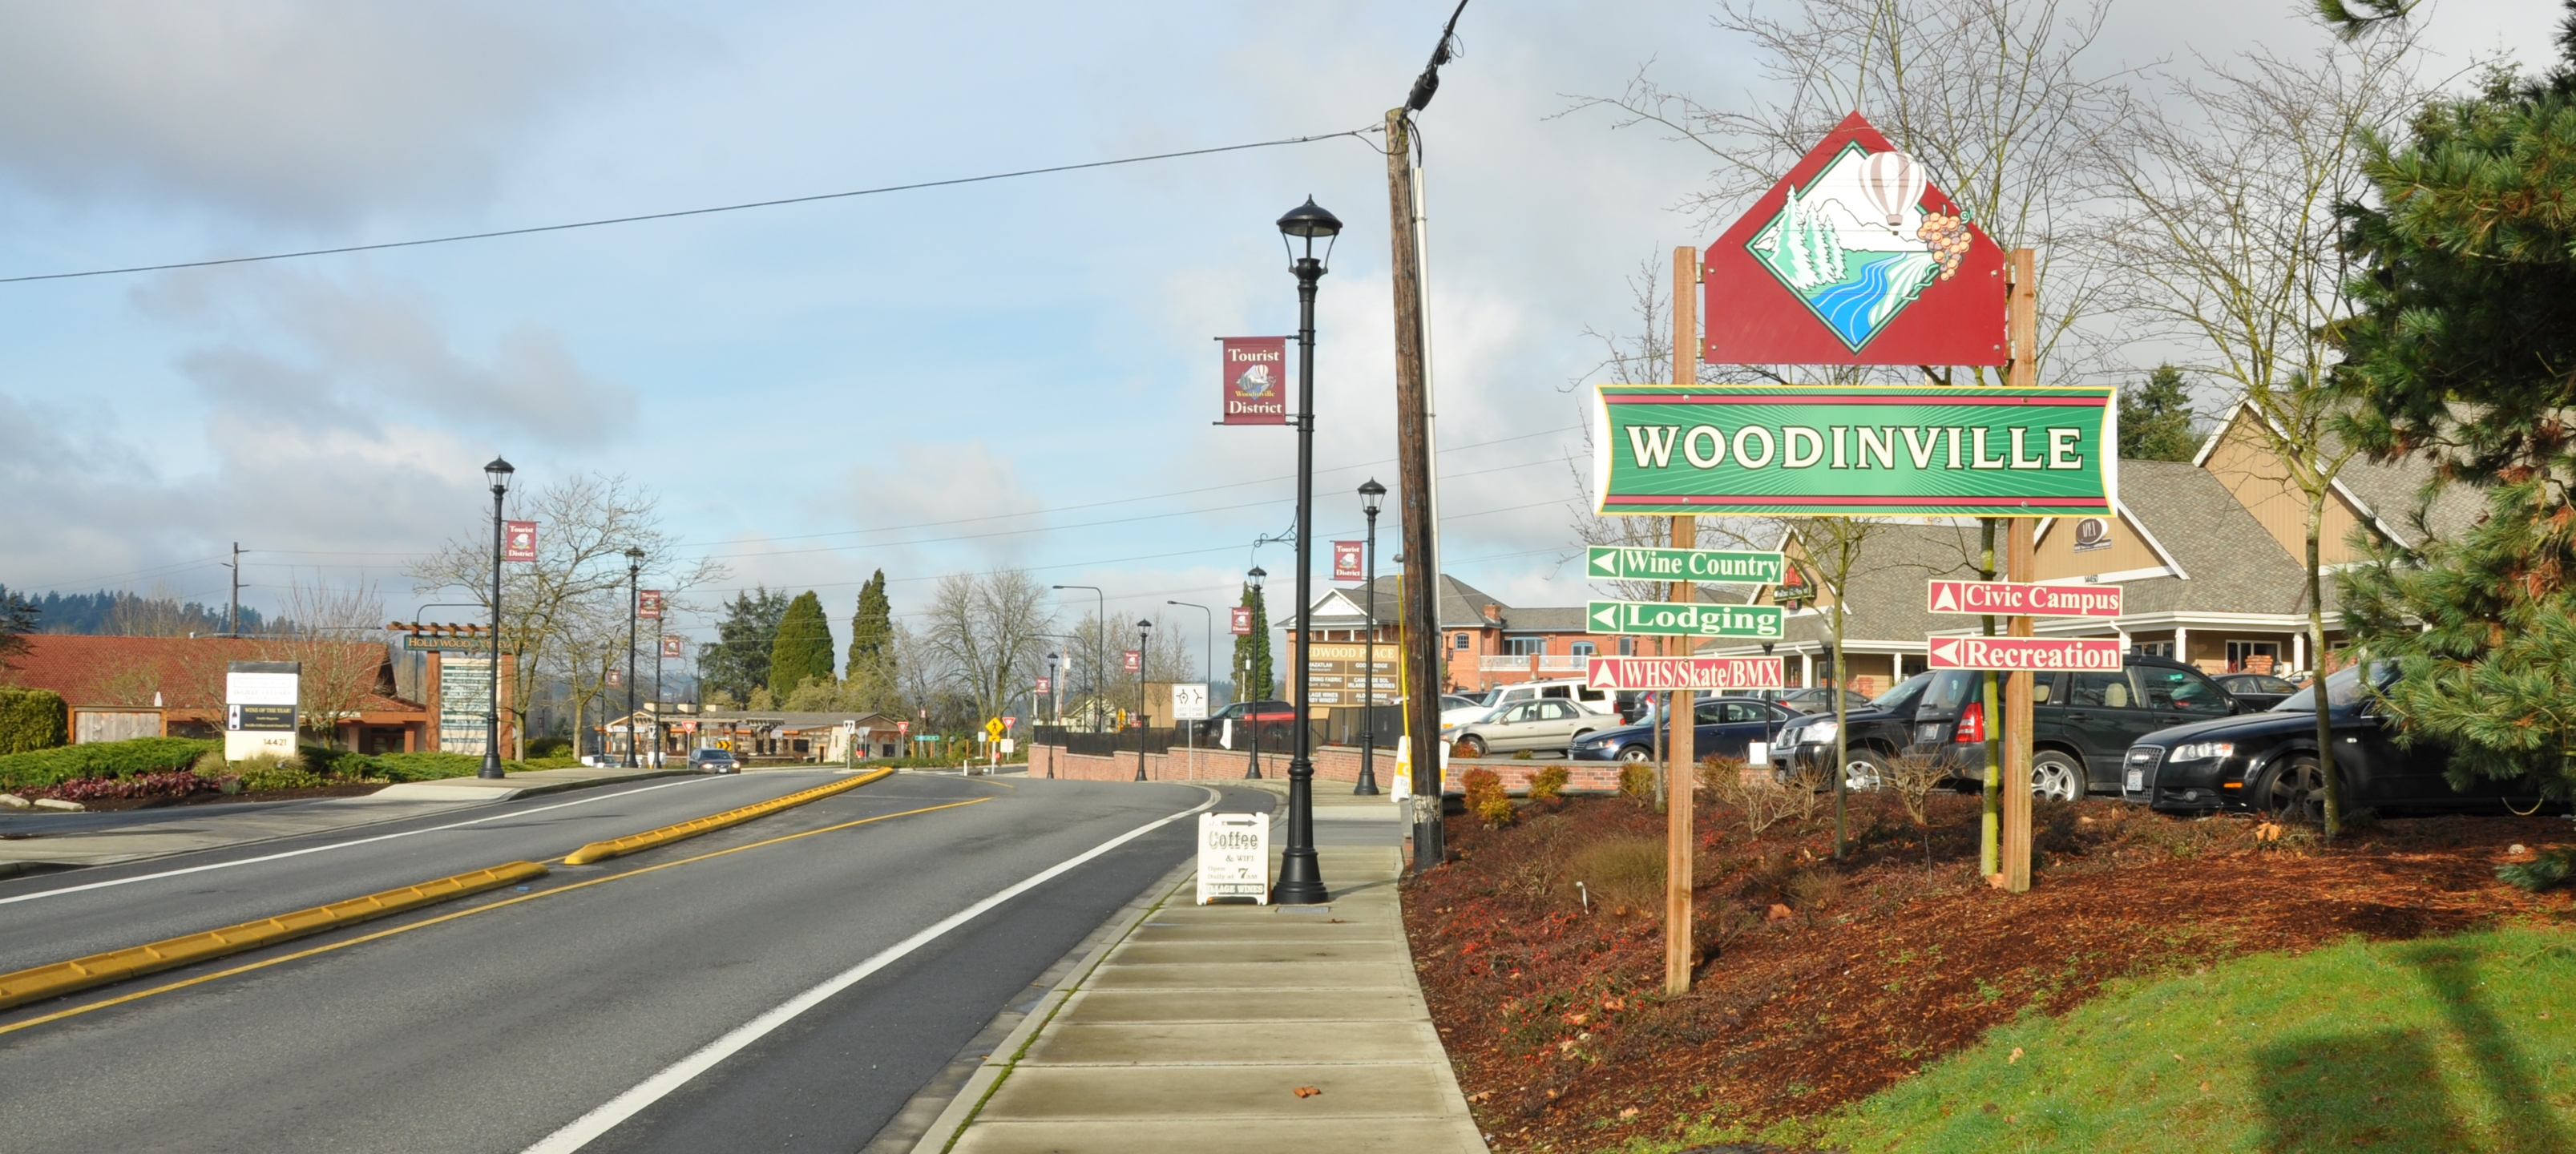 New Homes For Sale In Woodinville Wa